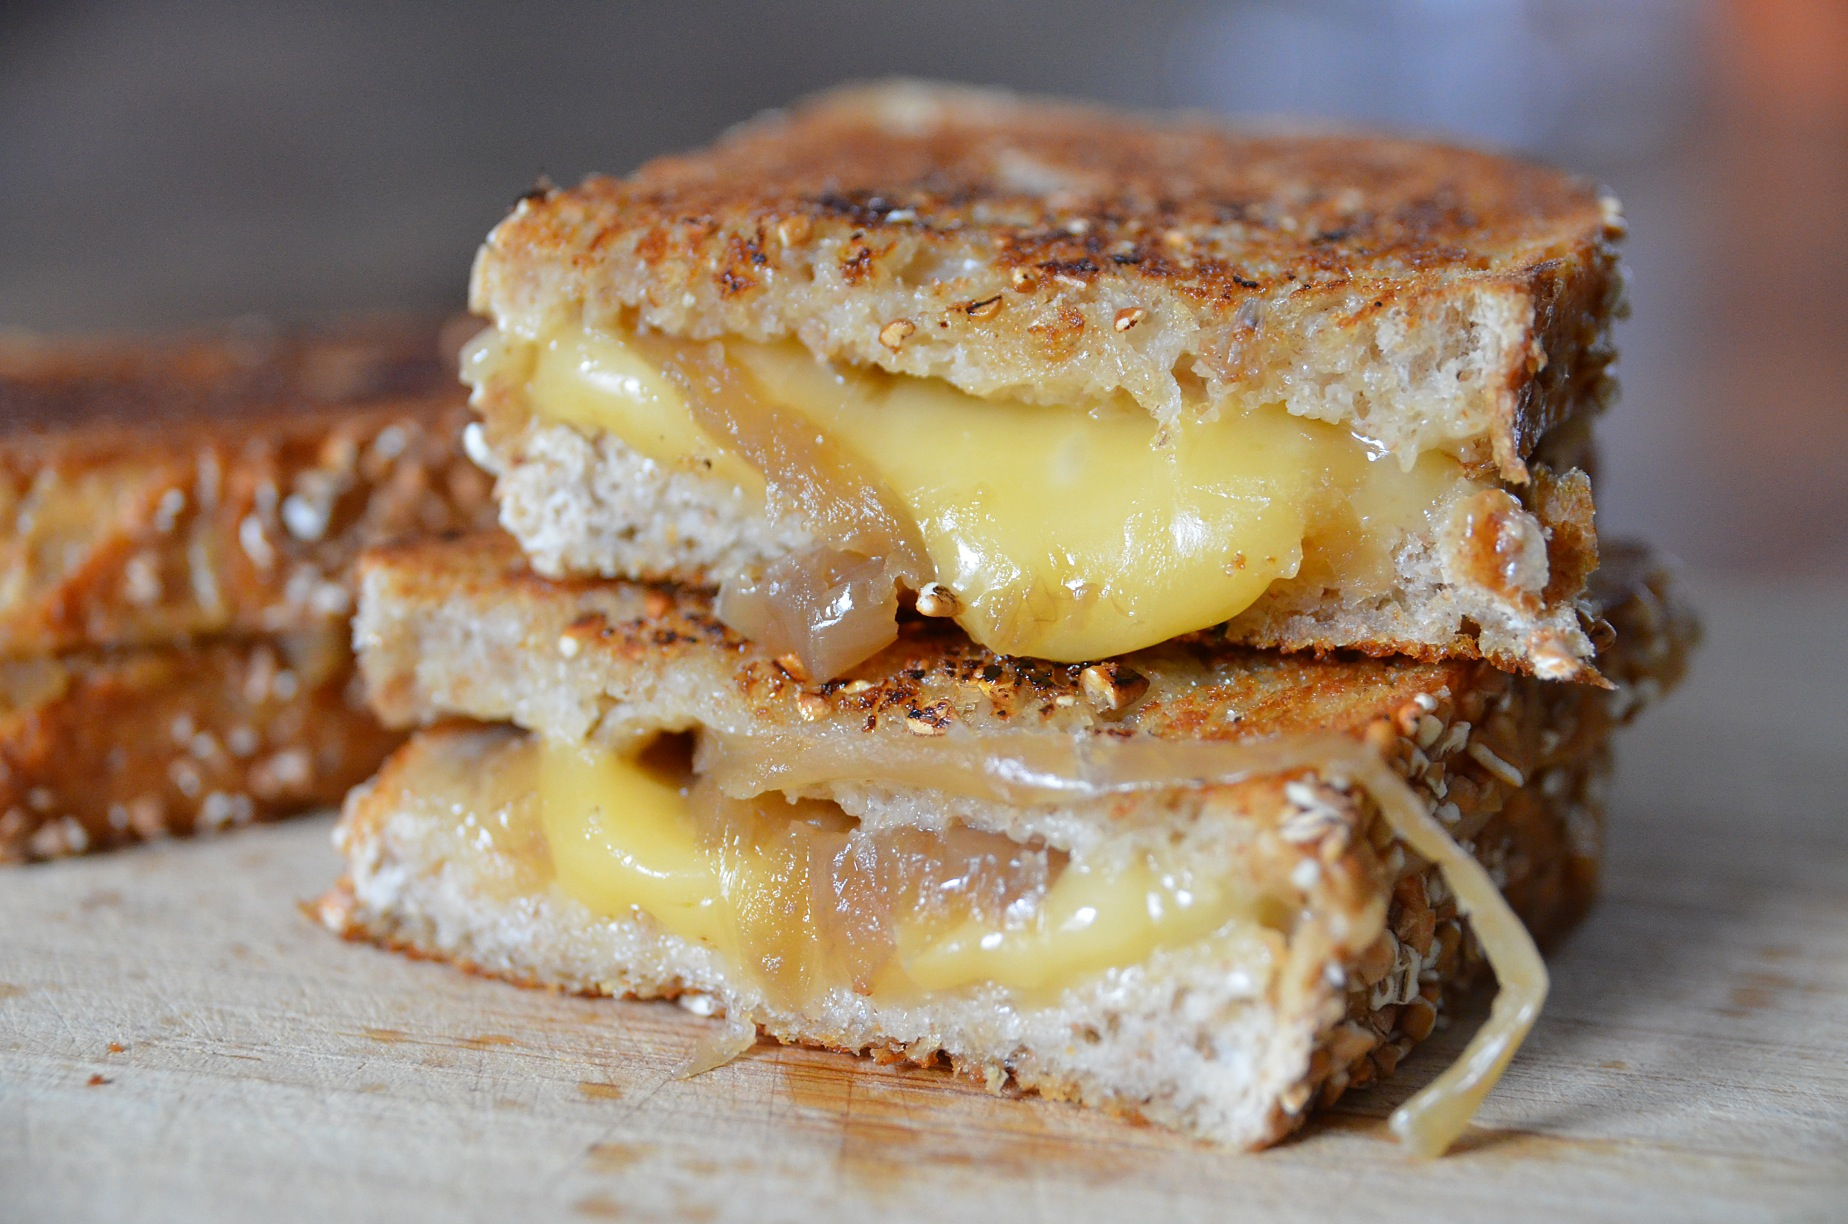 French onion soup grilled cheese | Soph n' Stuff